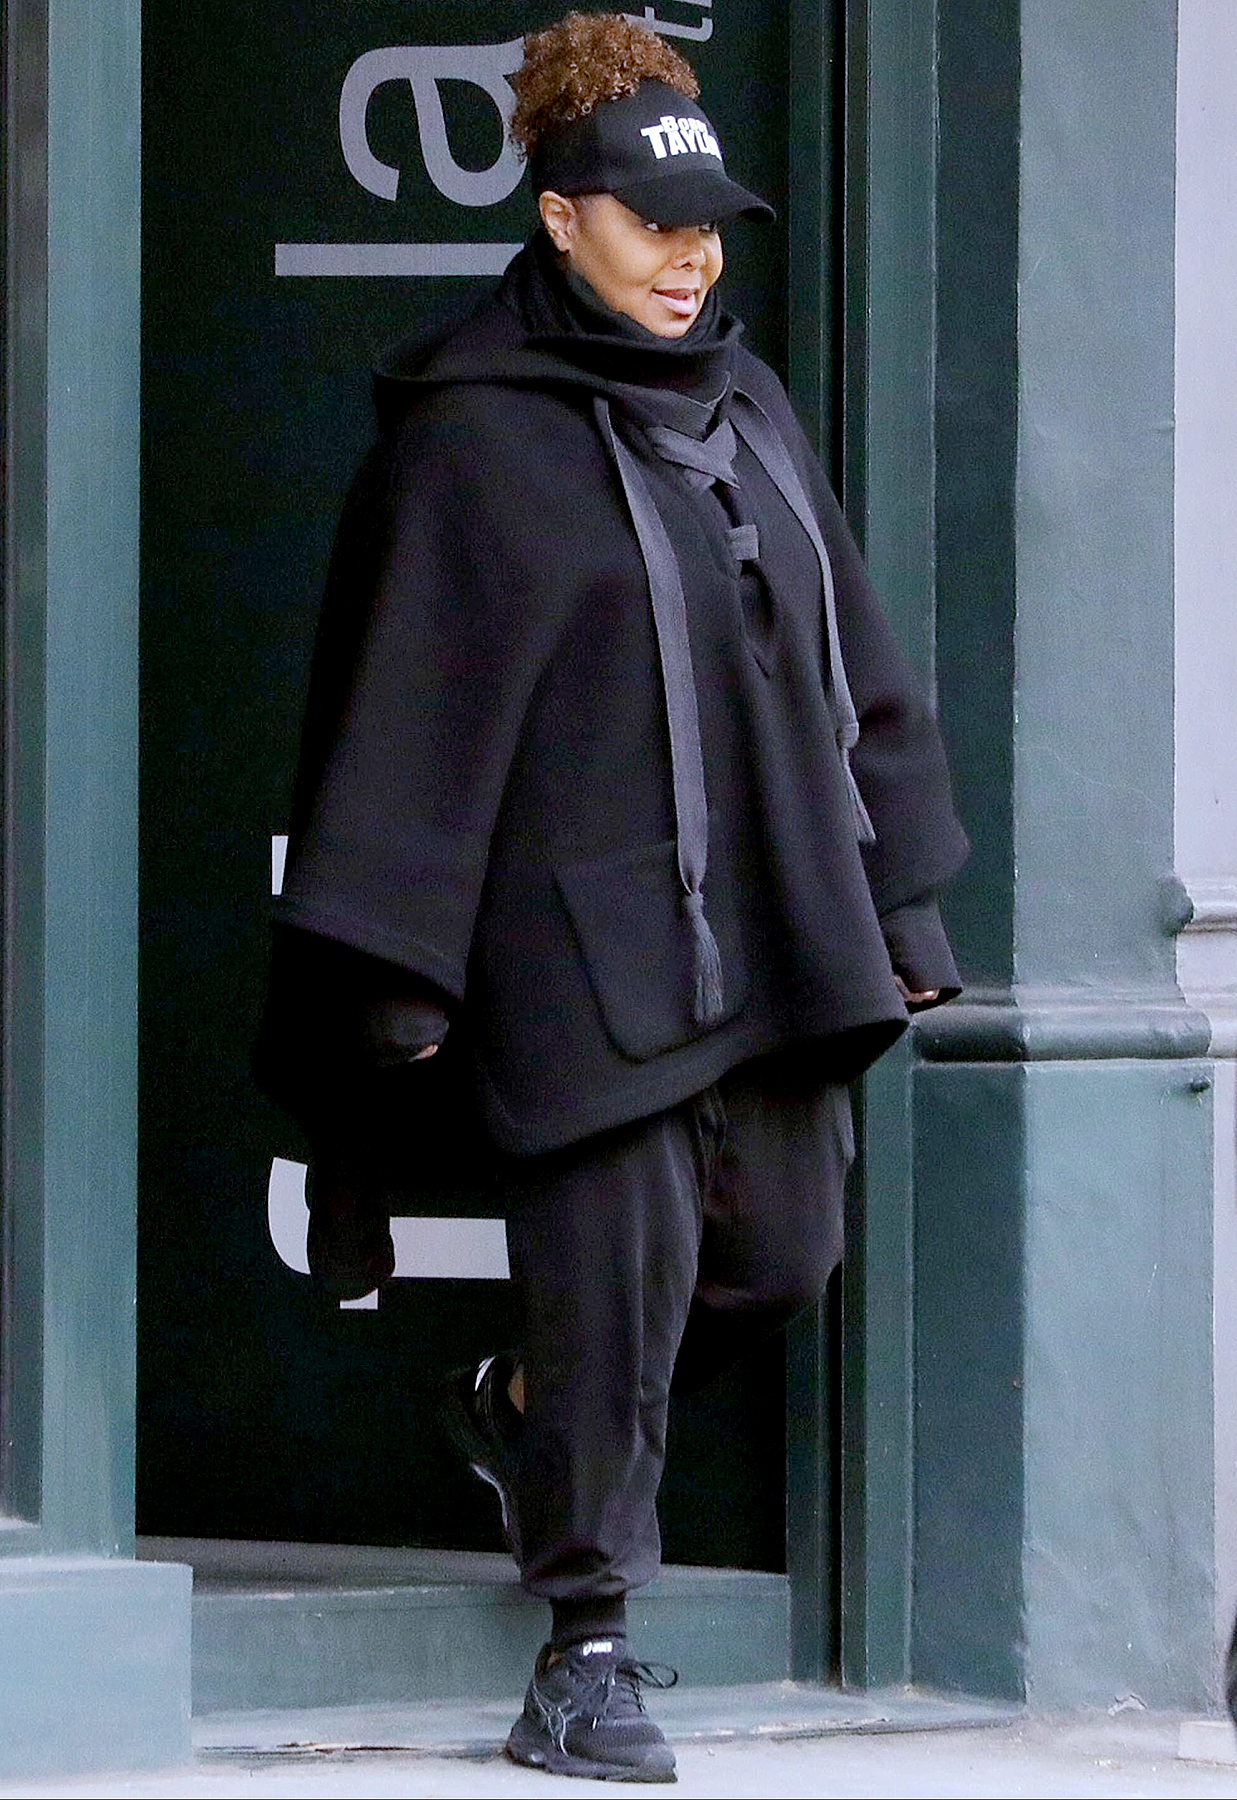 Janet Jackson seen for the first time since her split to her husband Wissam Al Mana was revealed.